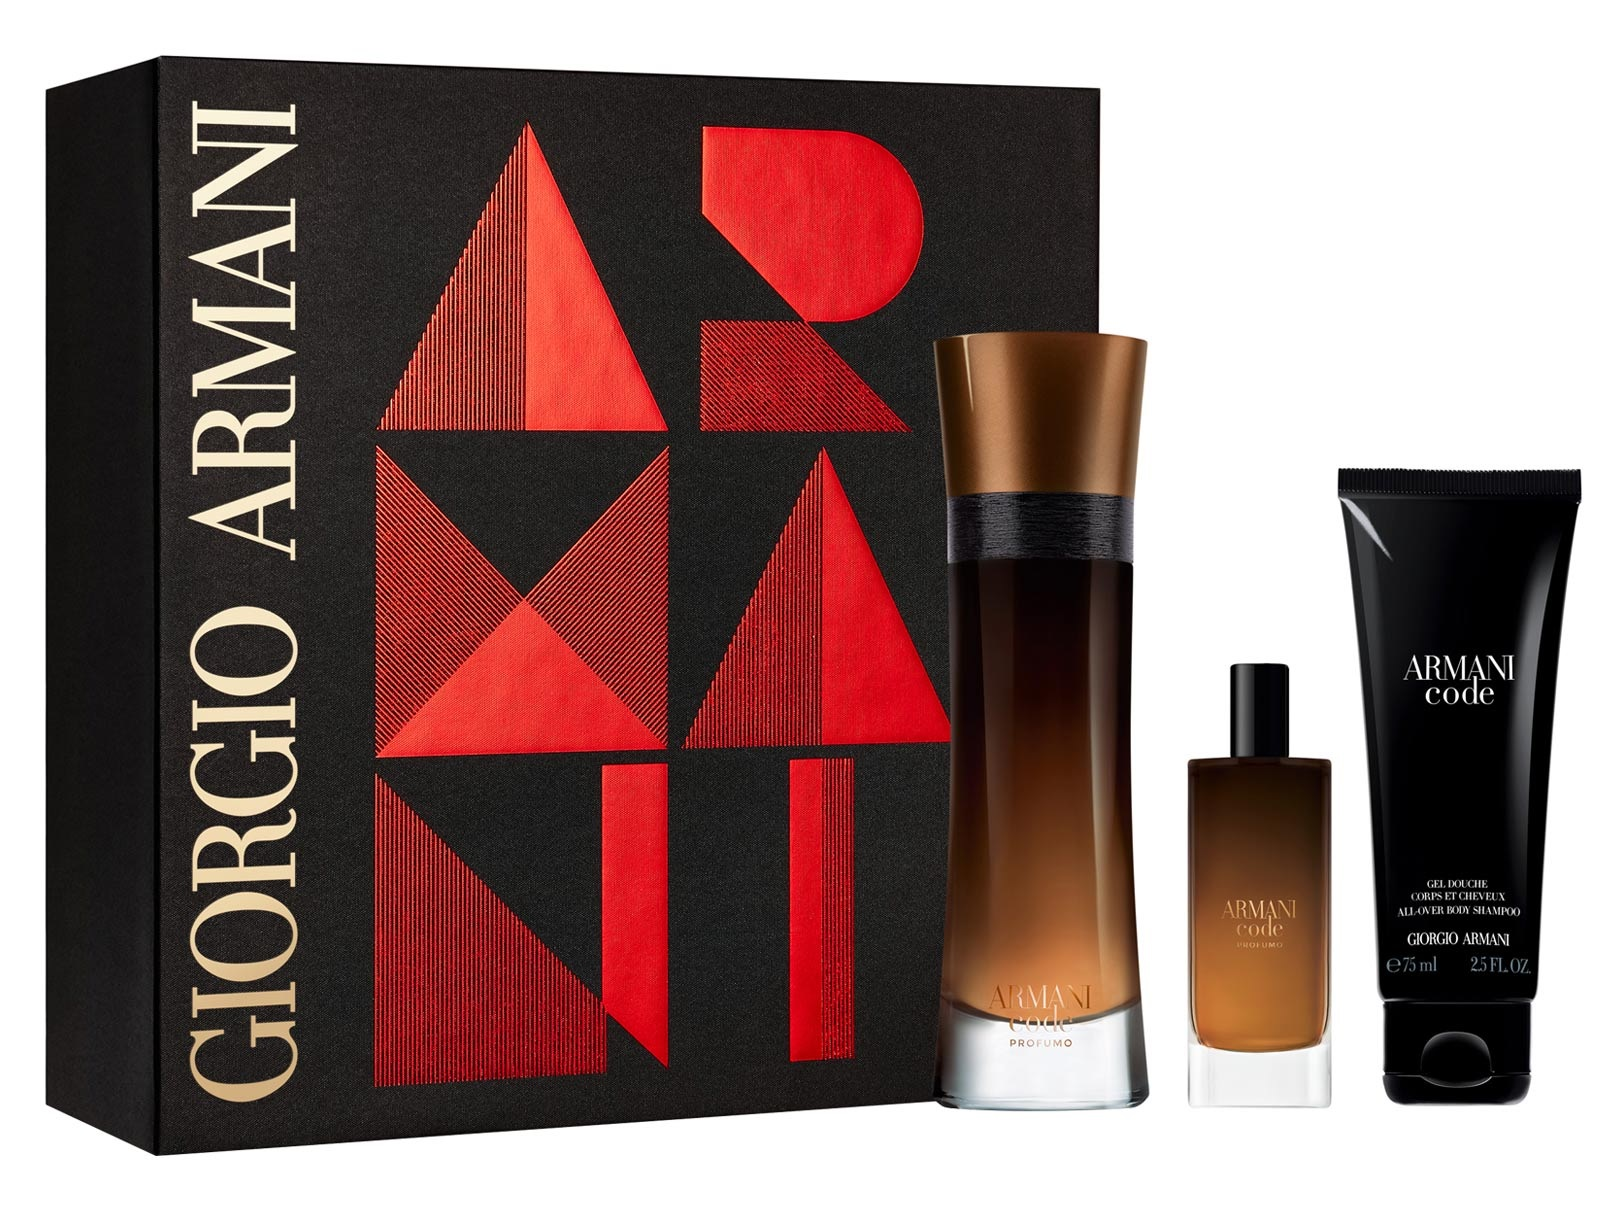 GIORGIO ARMANI CODE PROFUMO EDP 110 ML VP + MINI 15 ML + GEL 75 ML SET REGALO